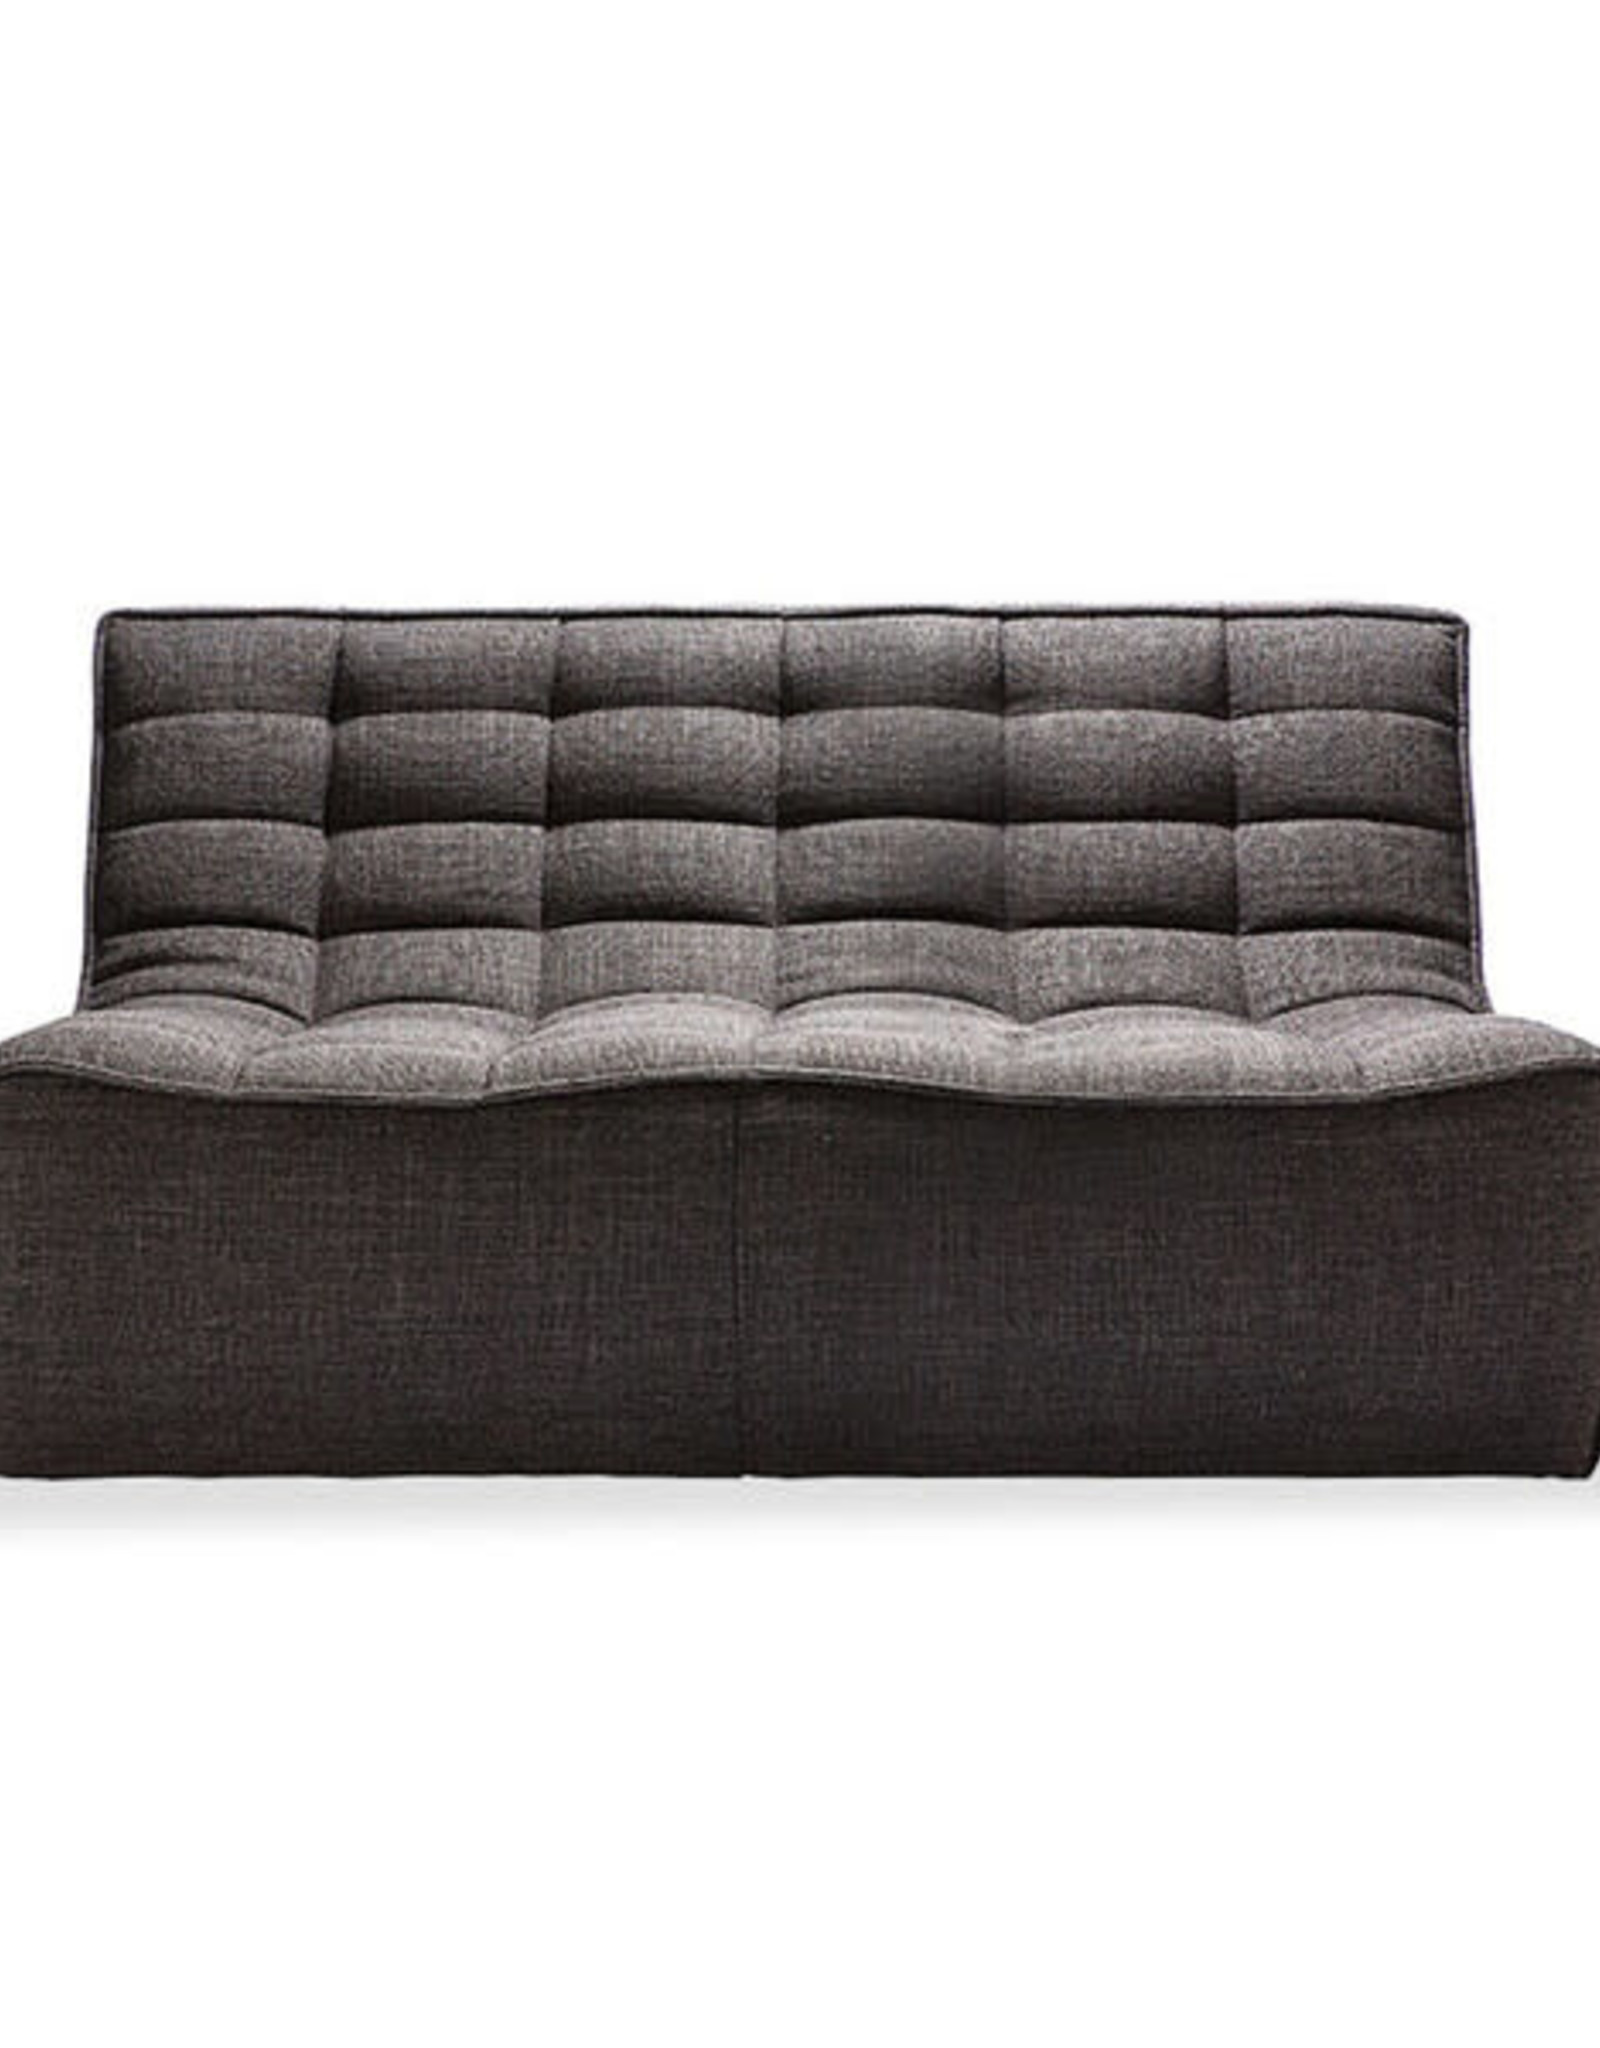 N701 Sofa, Two-Seater